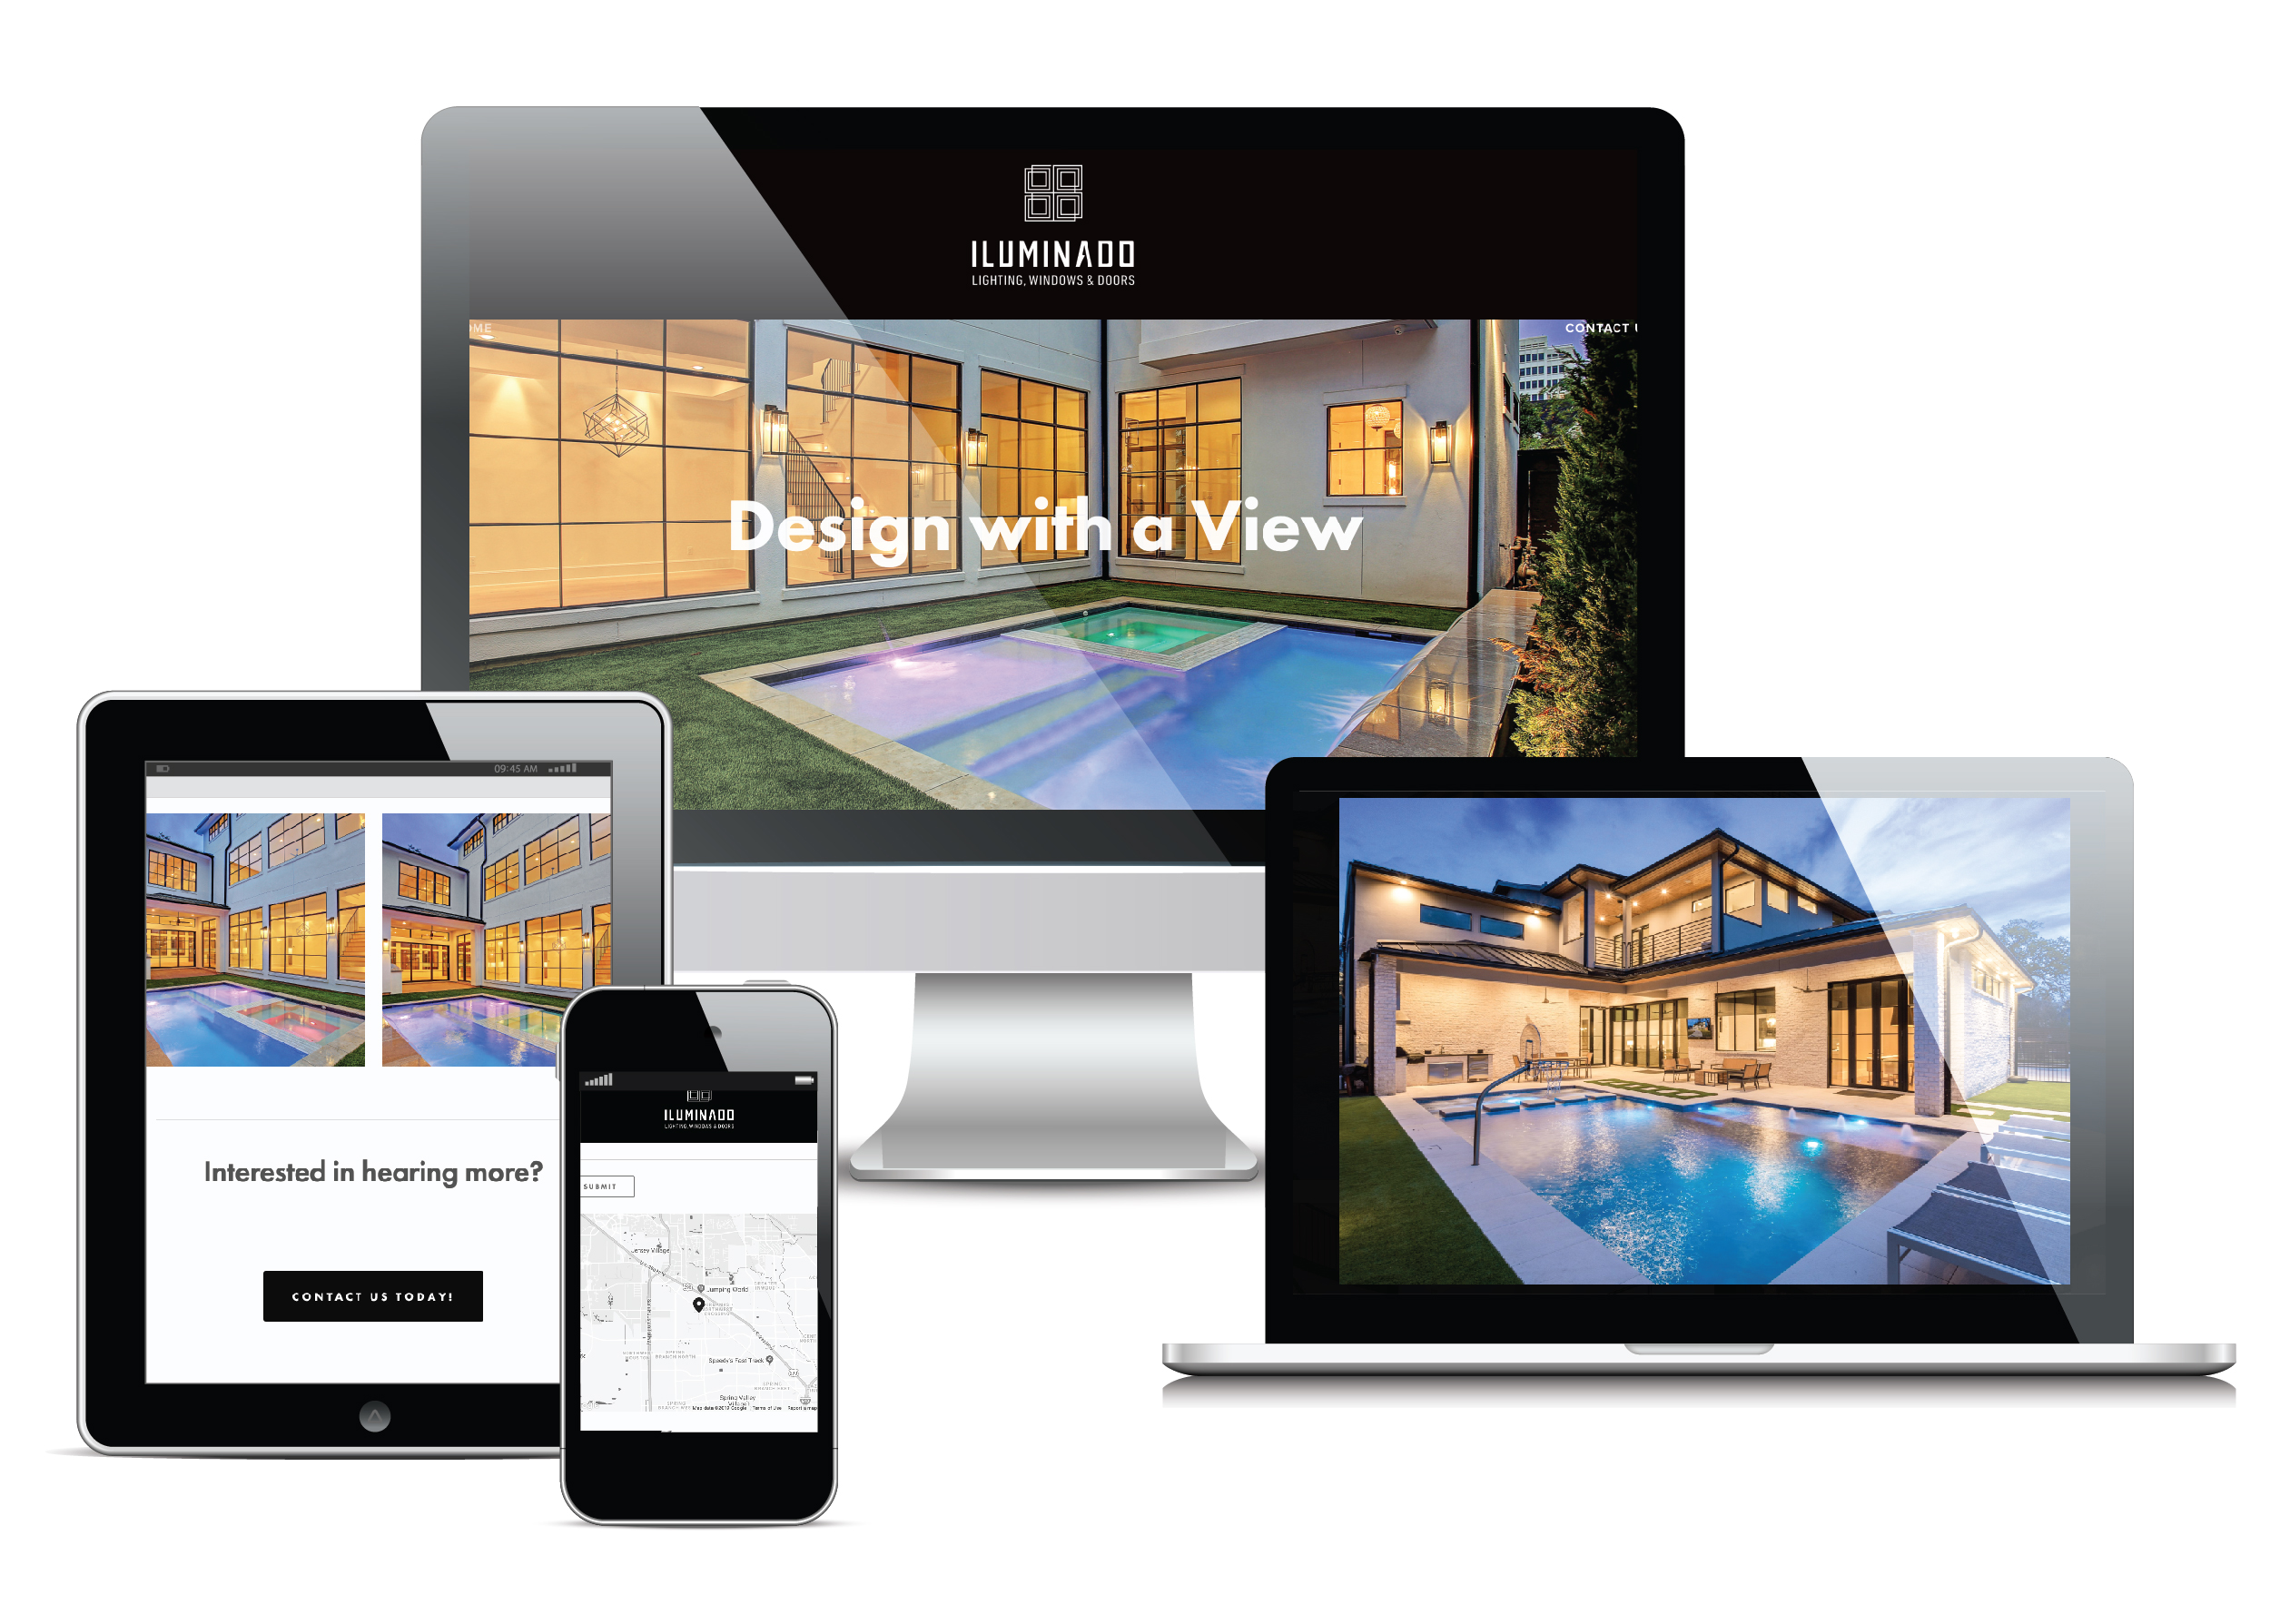 A responsive website reflected a clean and simple aesthetic, showcasing product.